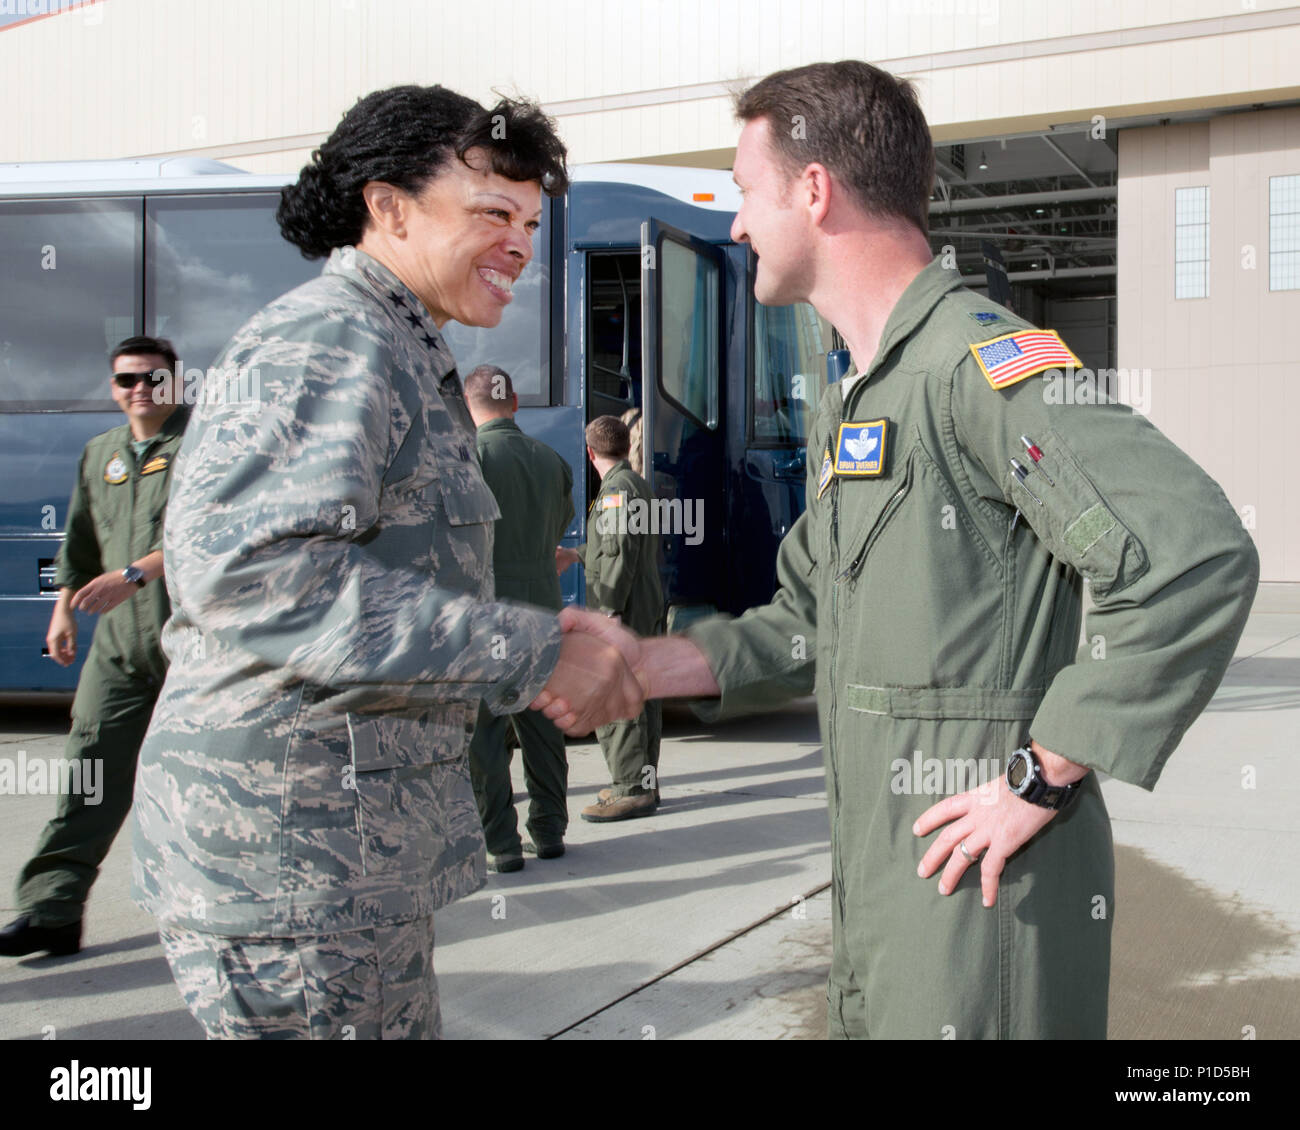 U.S. Air Force Lt. Gen. Stayce Harris, assitant Vice Chief of Staff and Director of the Air Staff, shakes hands with Lt. Col Brian Tavernier, 60th Operations Group deputy commander during her tour at Travis Air Force Base, Calif., Oct. 17, 2016. Harris also toured a KC-10 Extender, C-17 Globemaster III, and a C-5M Super Galaxy as part of the Air Force Vice Chief of Staff Air Attaché' Fall Tour (U.S. Air Force photo by Louis Briscese) - Stock Image